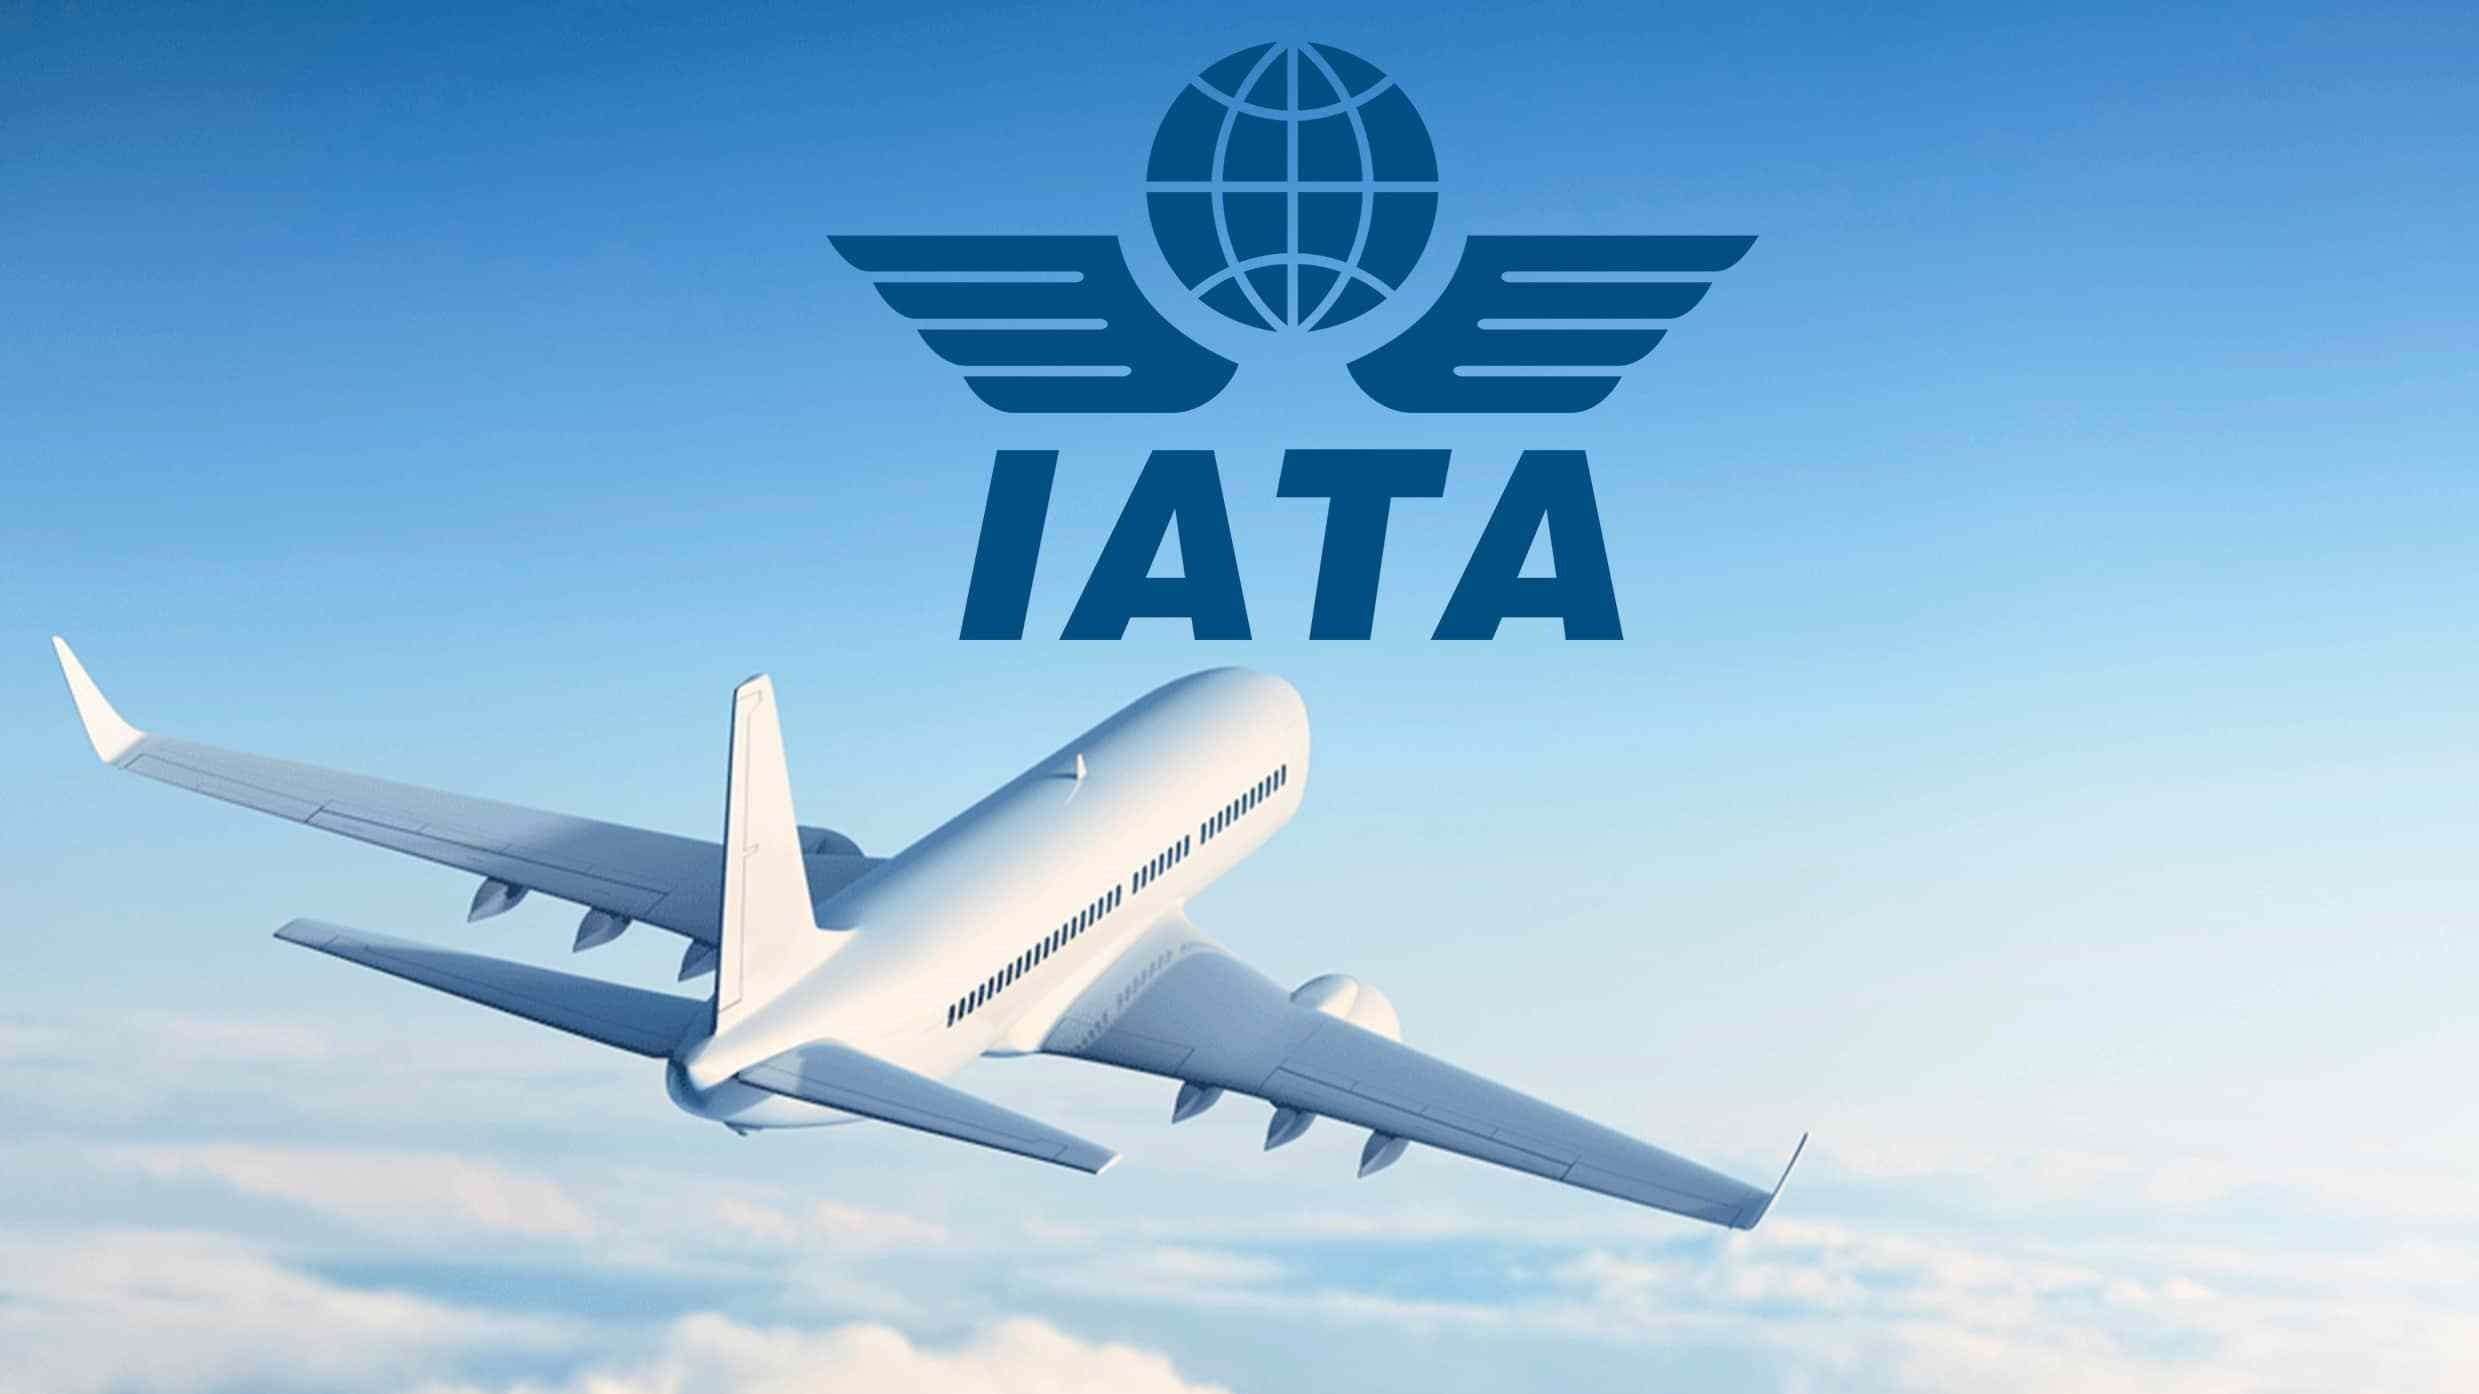 IATA- The Business of Freedom